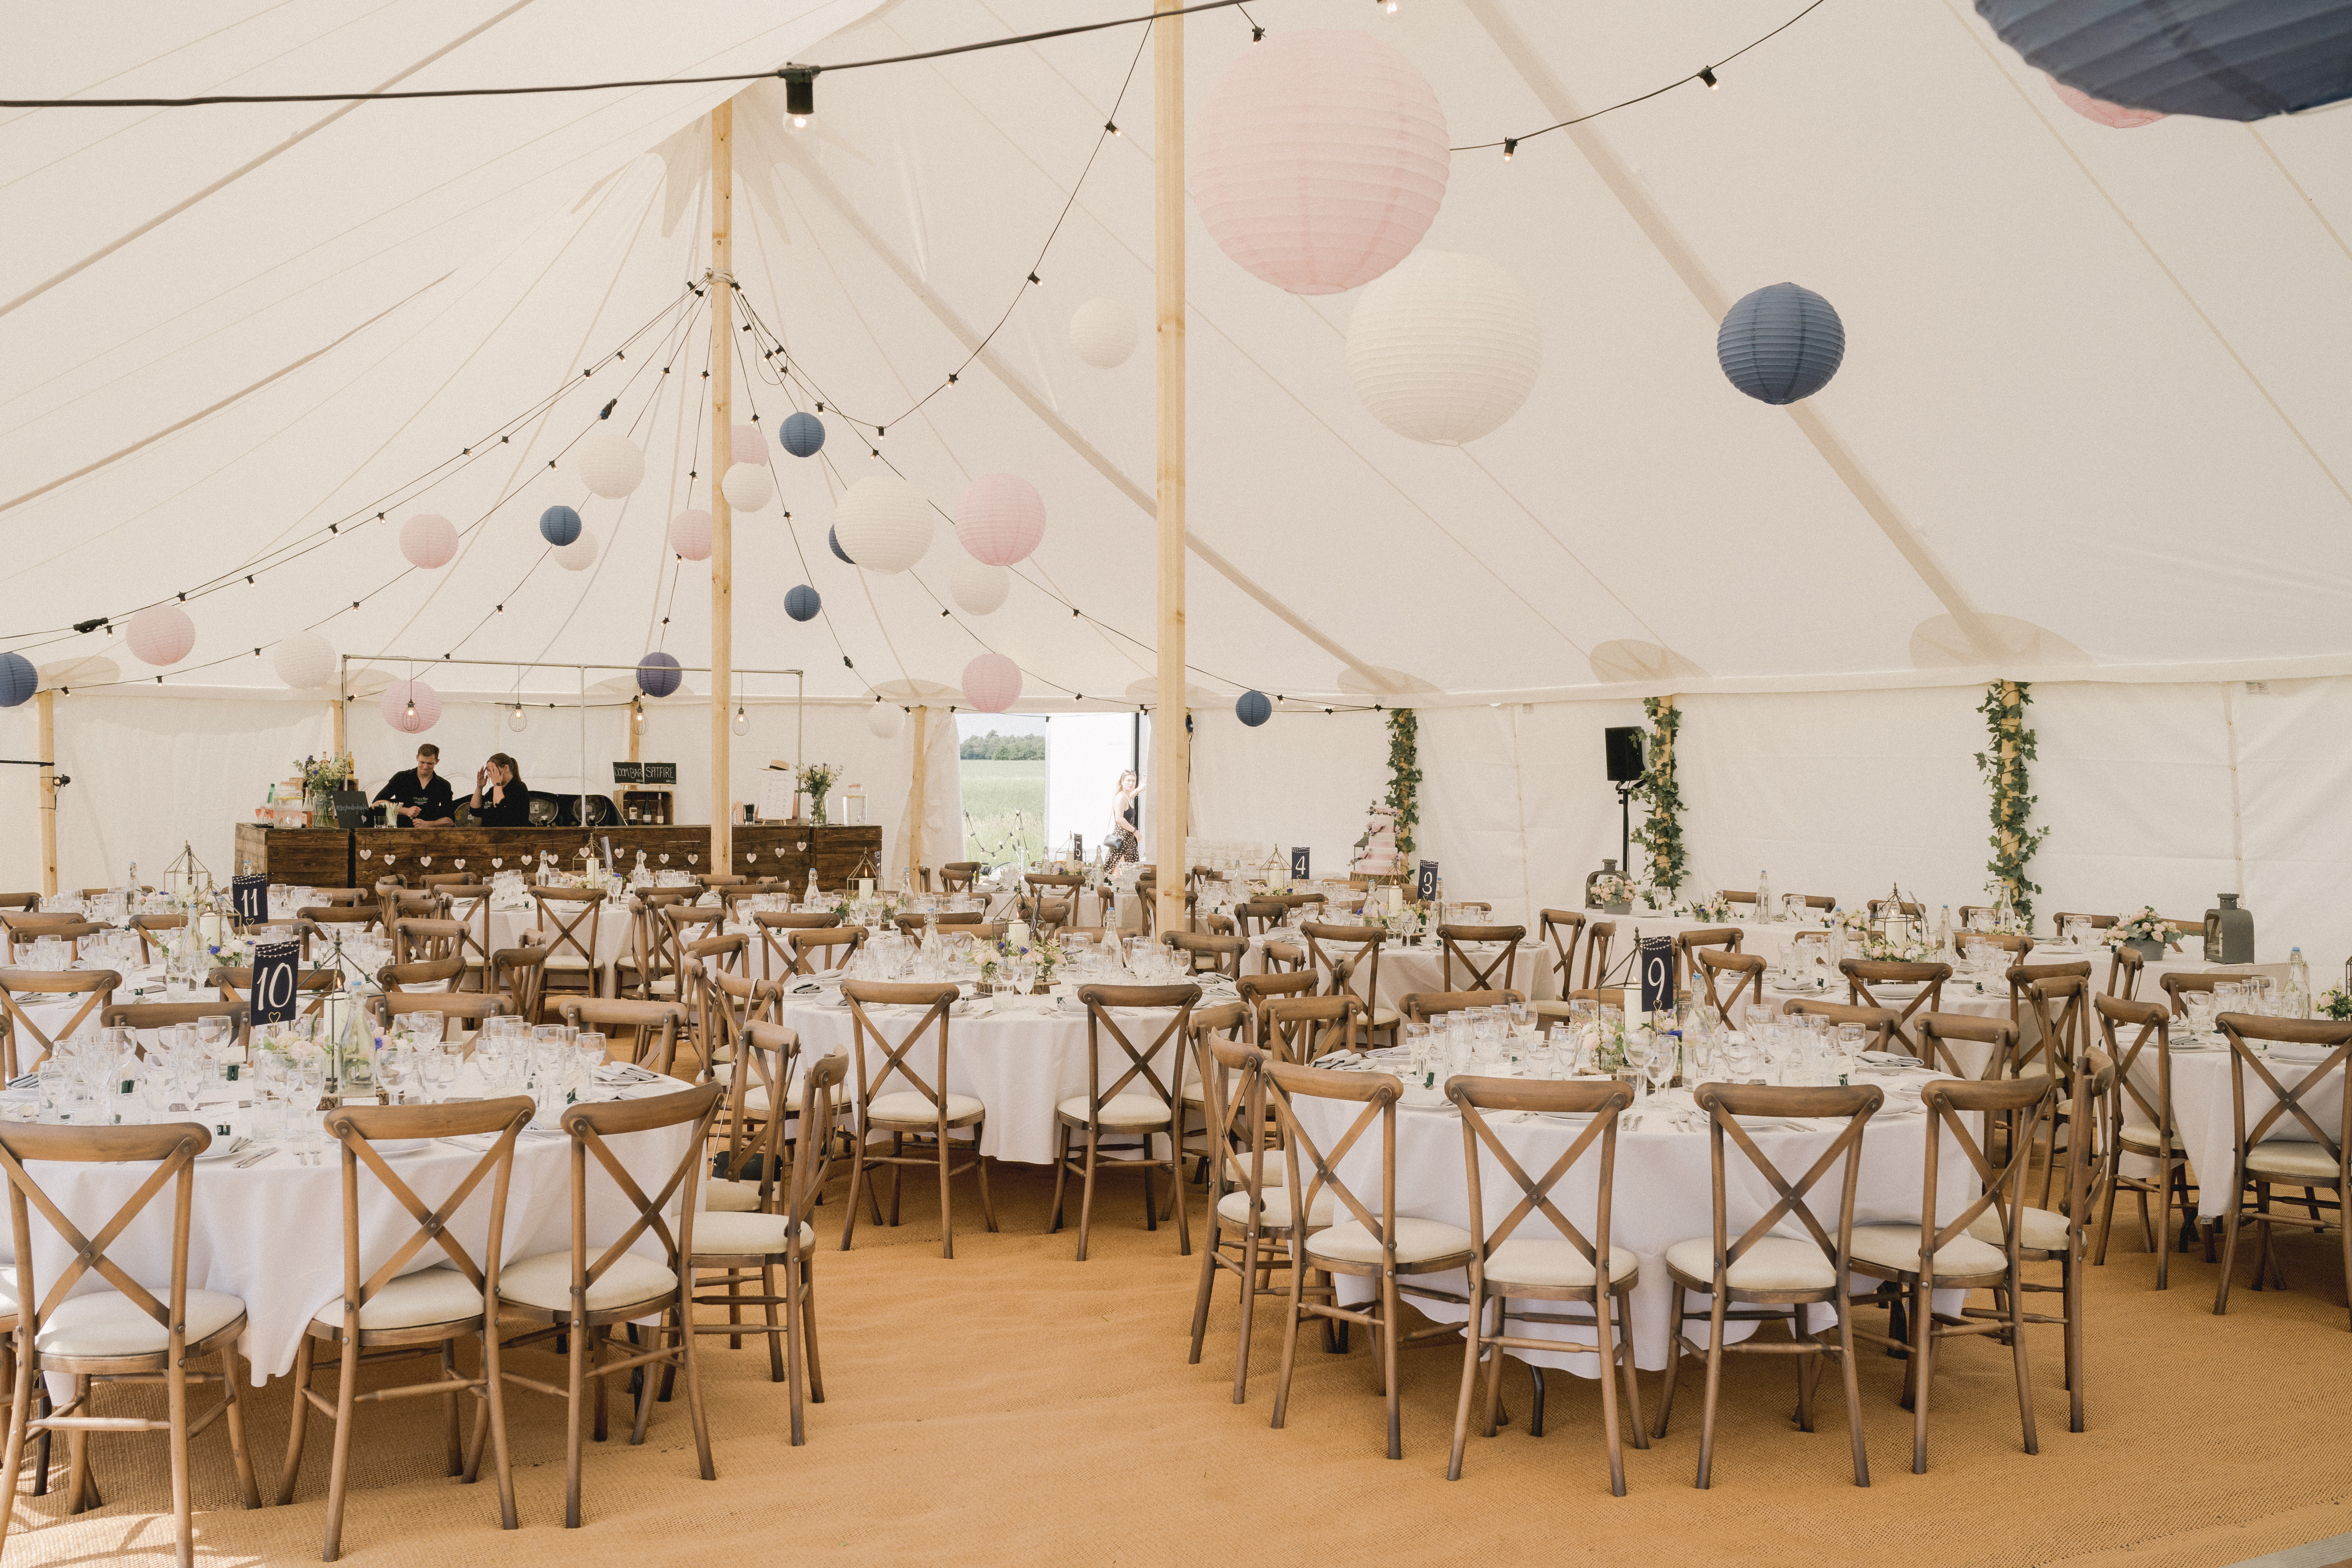 Marquee wedding decor hire with paper lantern ceiling installation